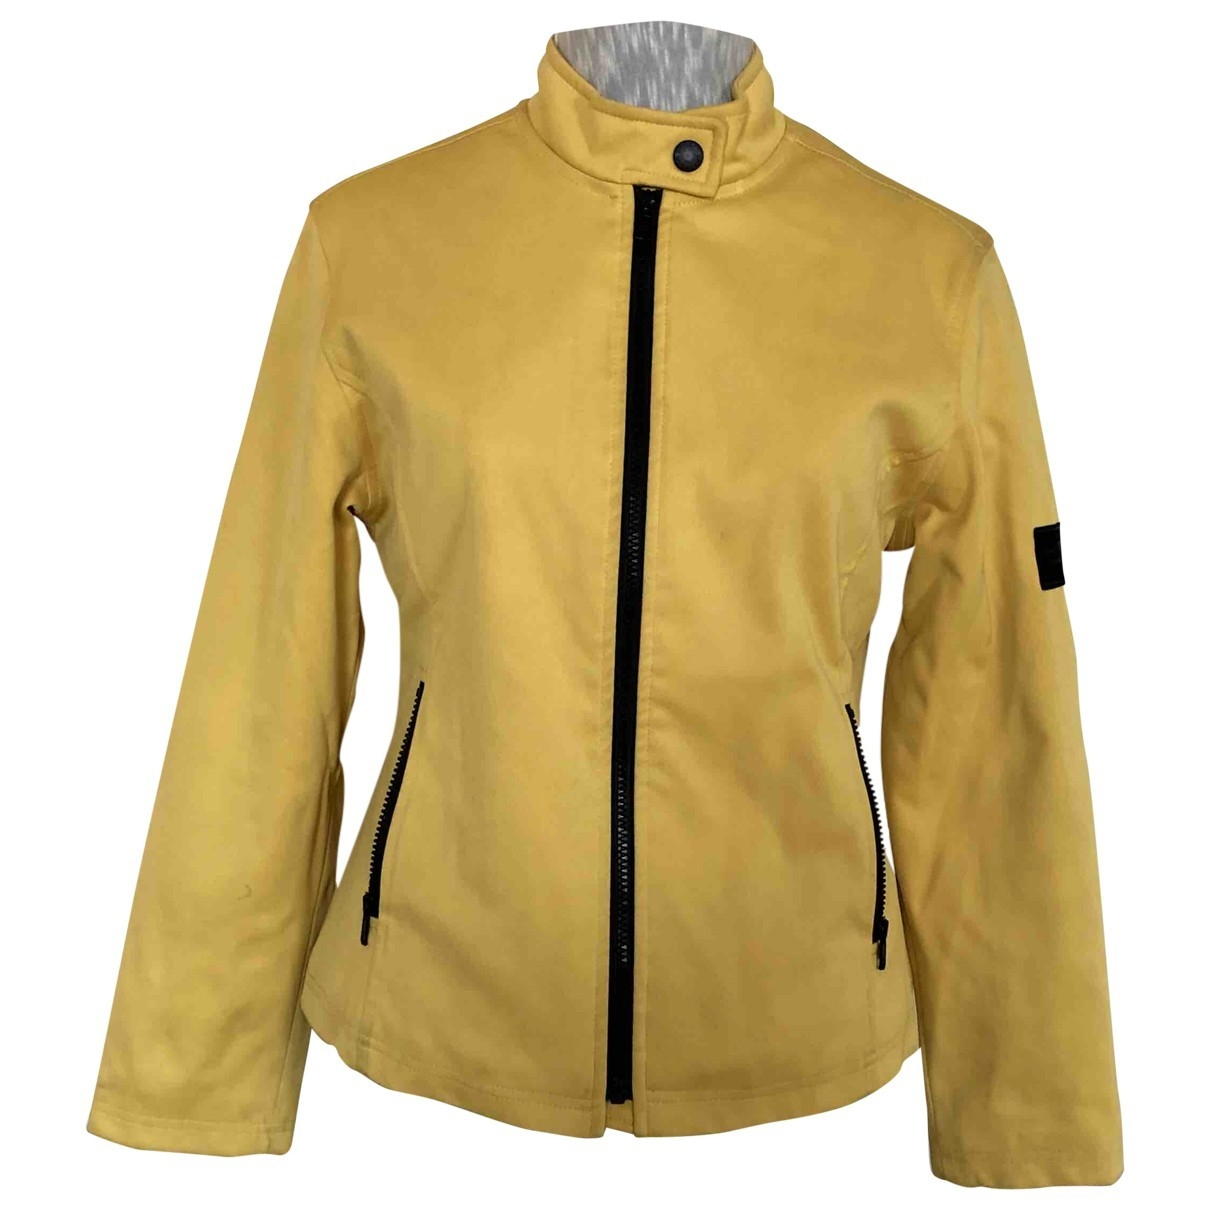 Burberry \N Yellow Leather jacket for Women M International